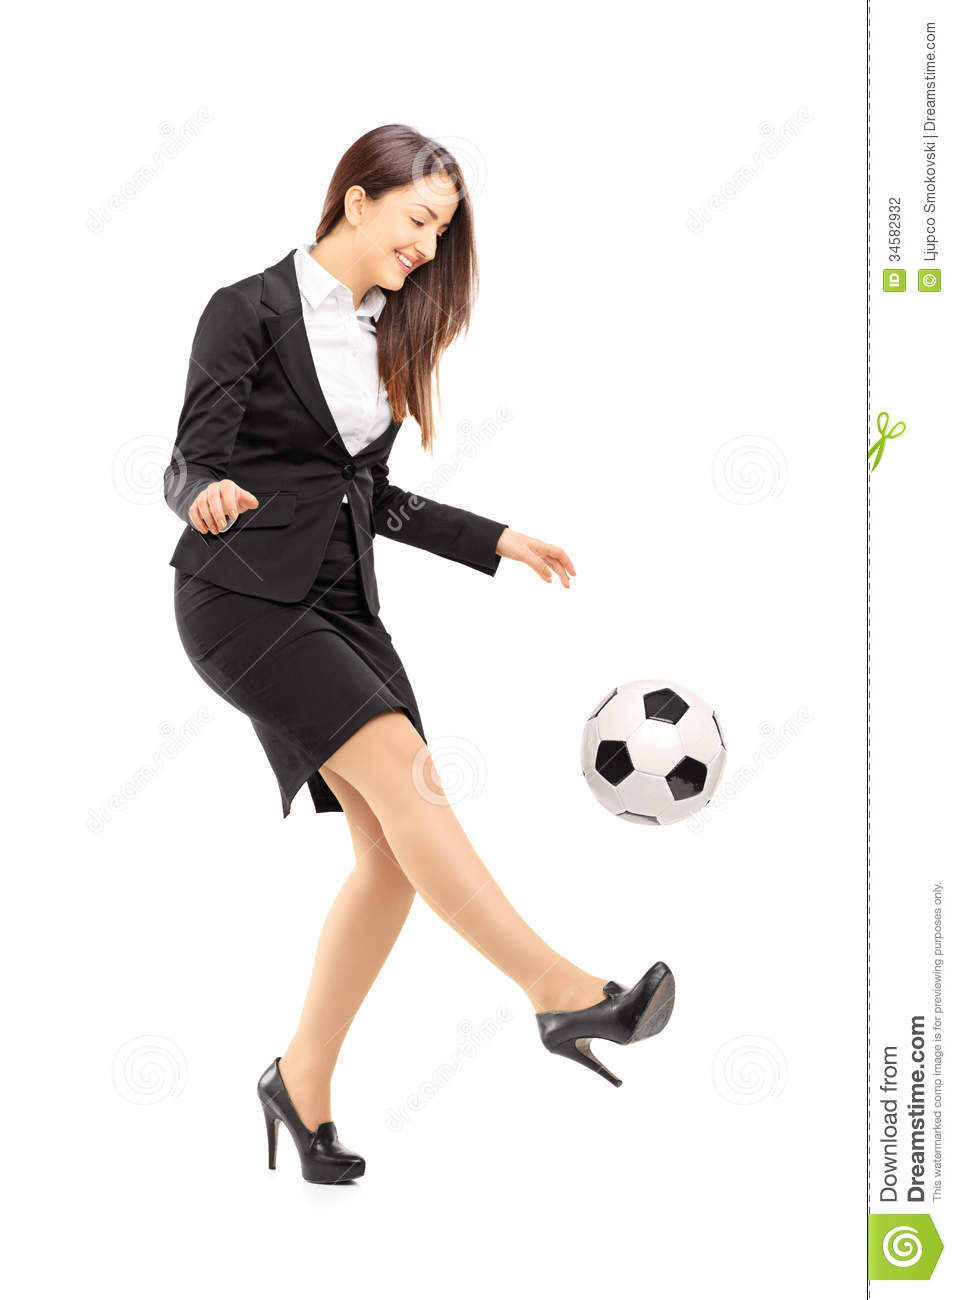 Full length portrait of a businesswoman in high heels kicking a